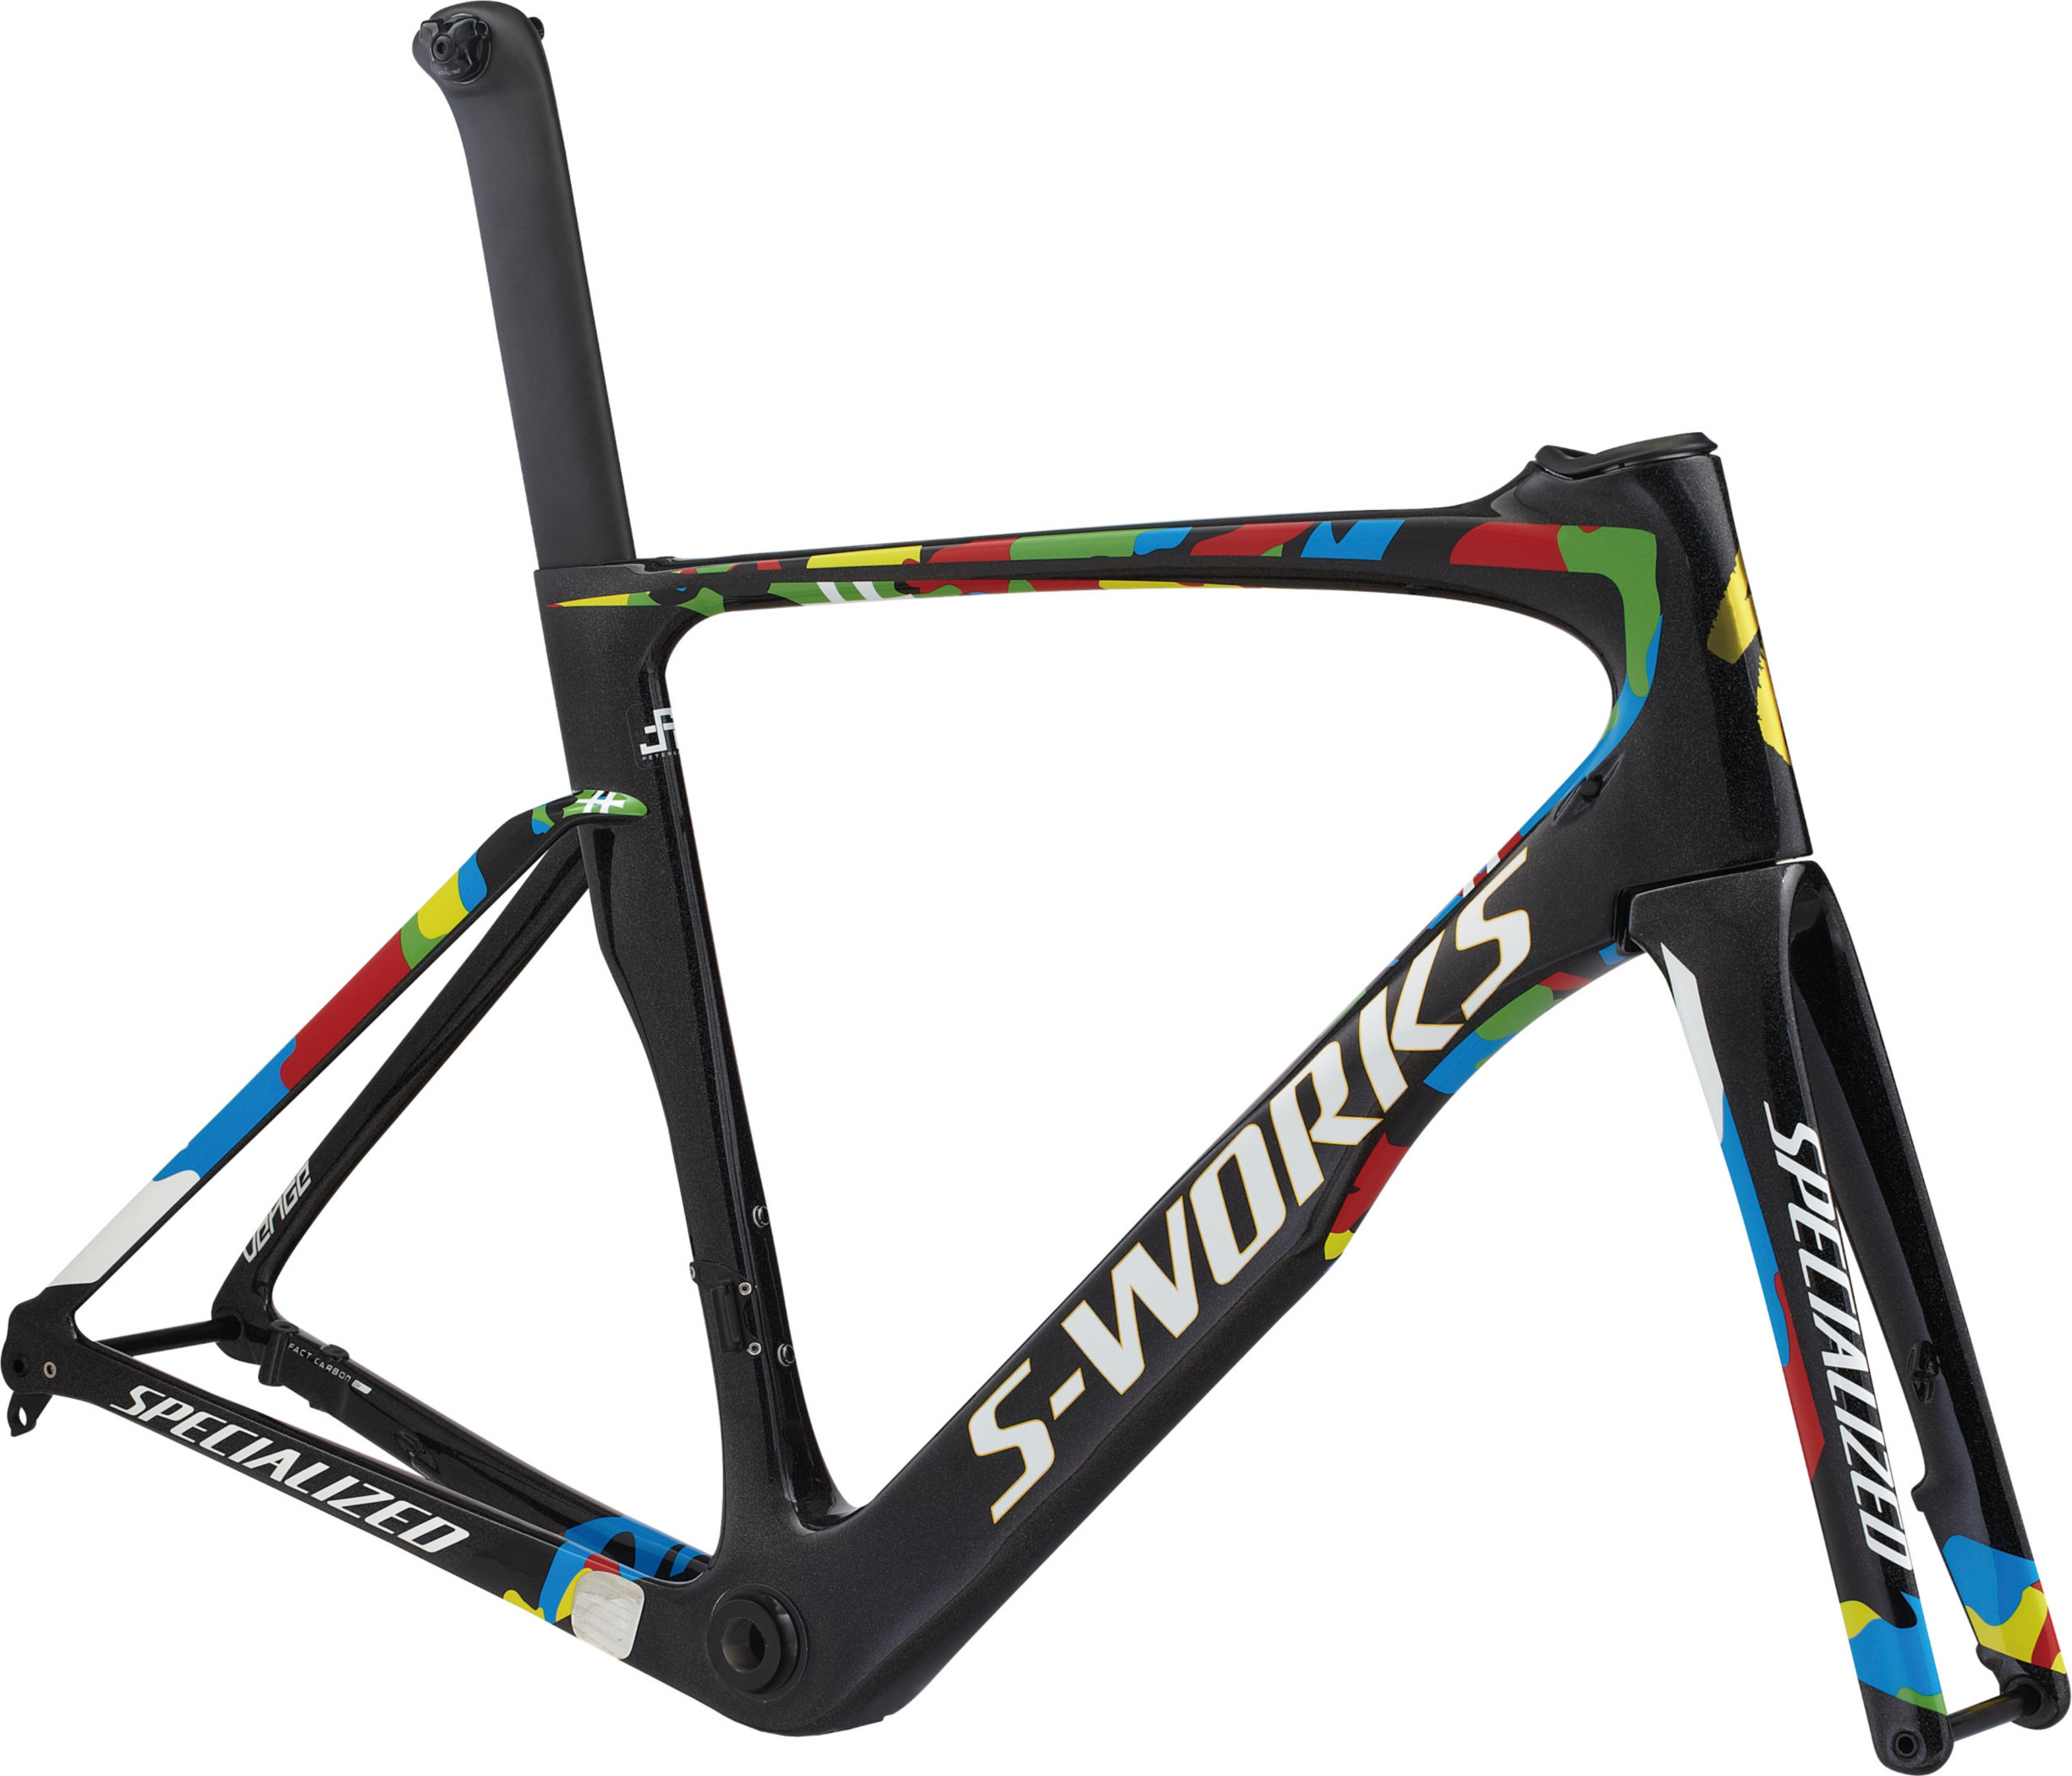 SPECIALIZED SW VENGE DISC VIAS FRMSET SAGAN WC 52 - SPECIALIZED SW VENGE DISC VIAS FRMSET SAGAN WC 52